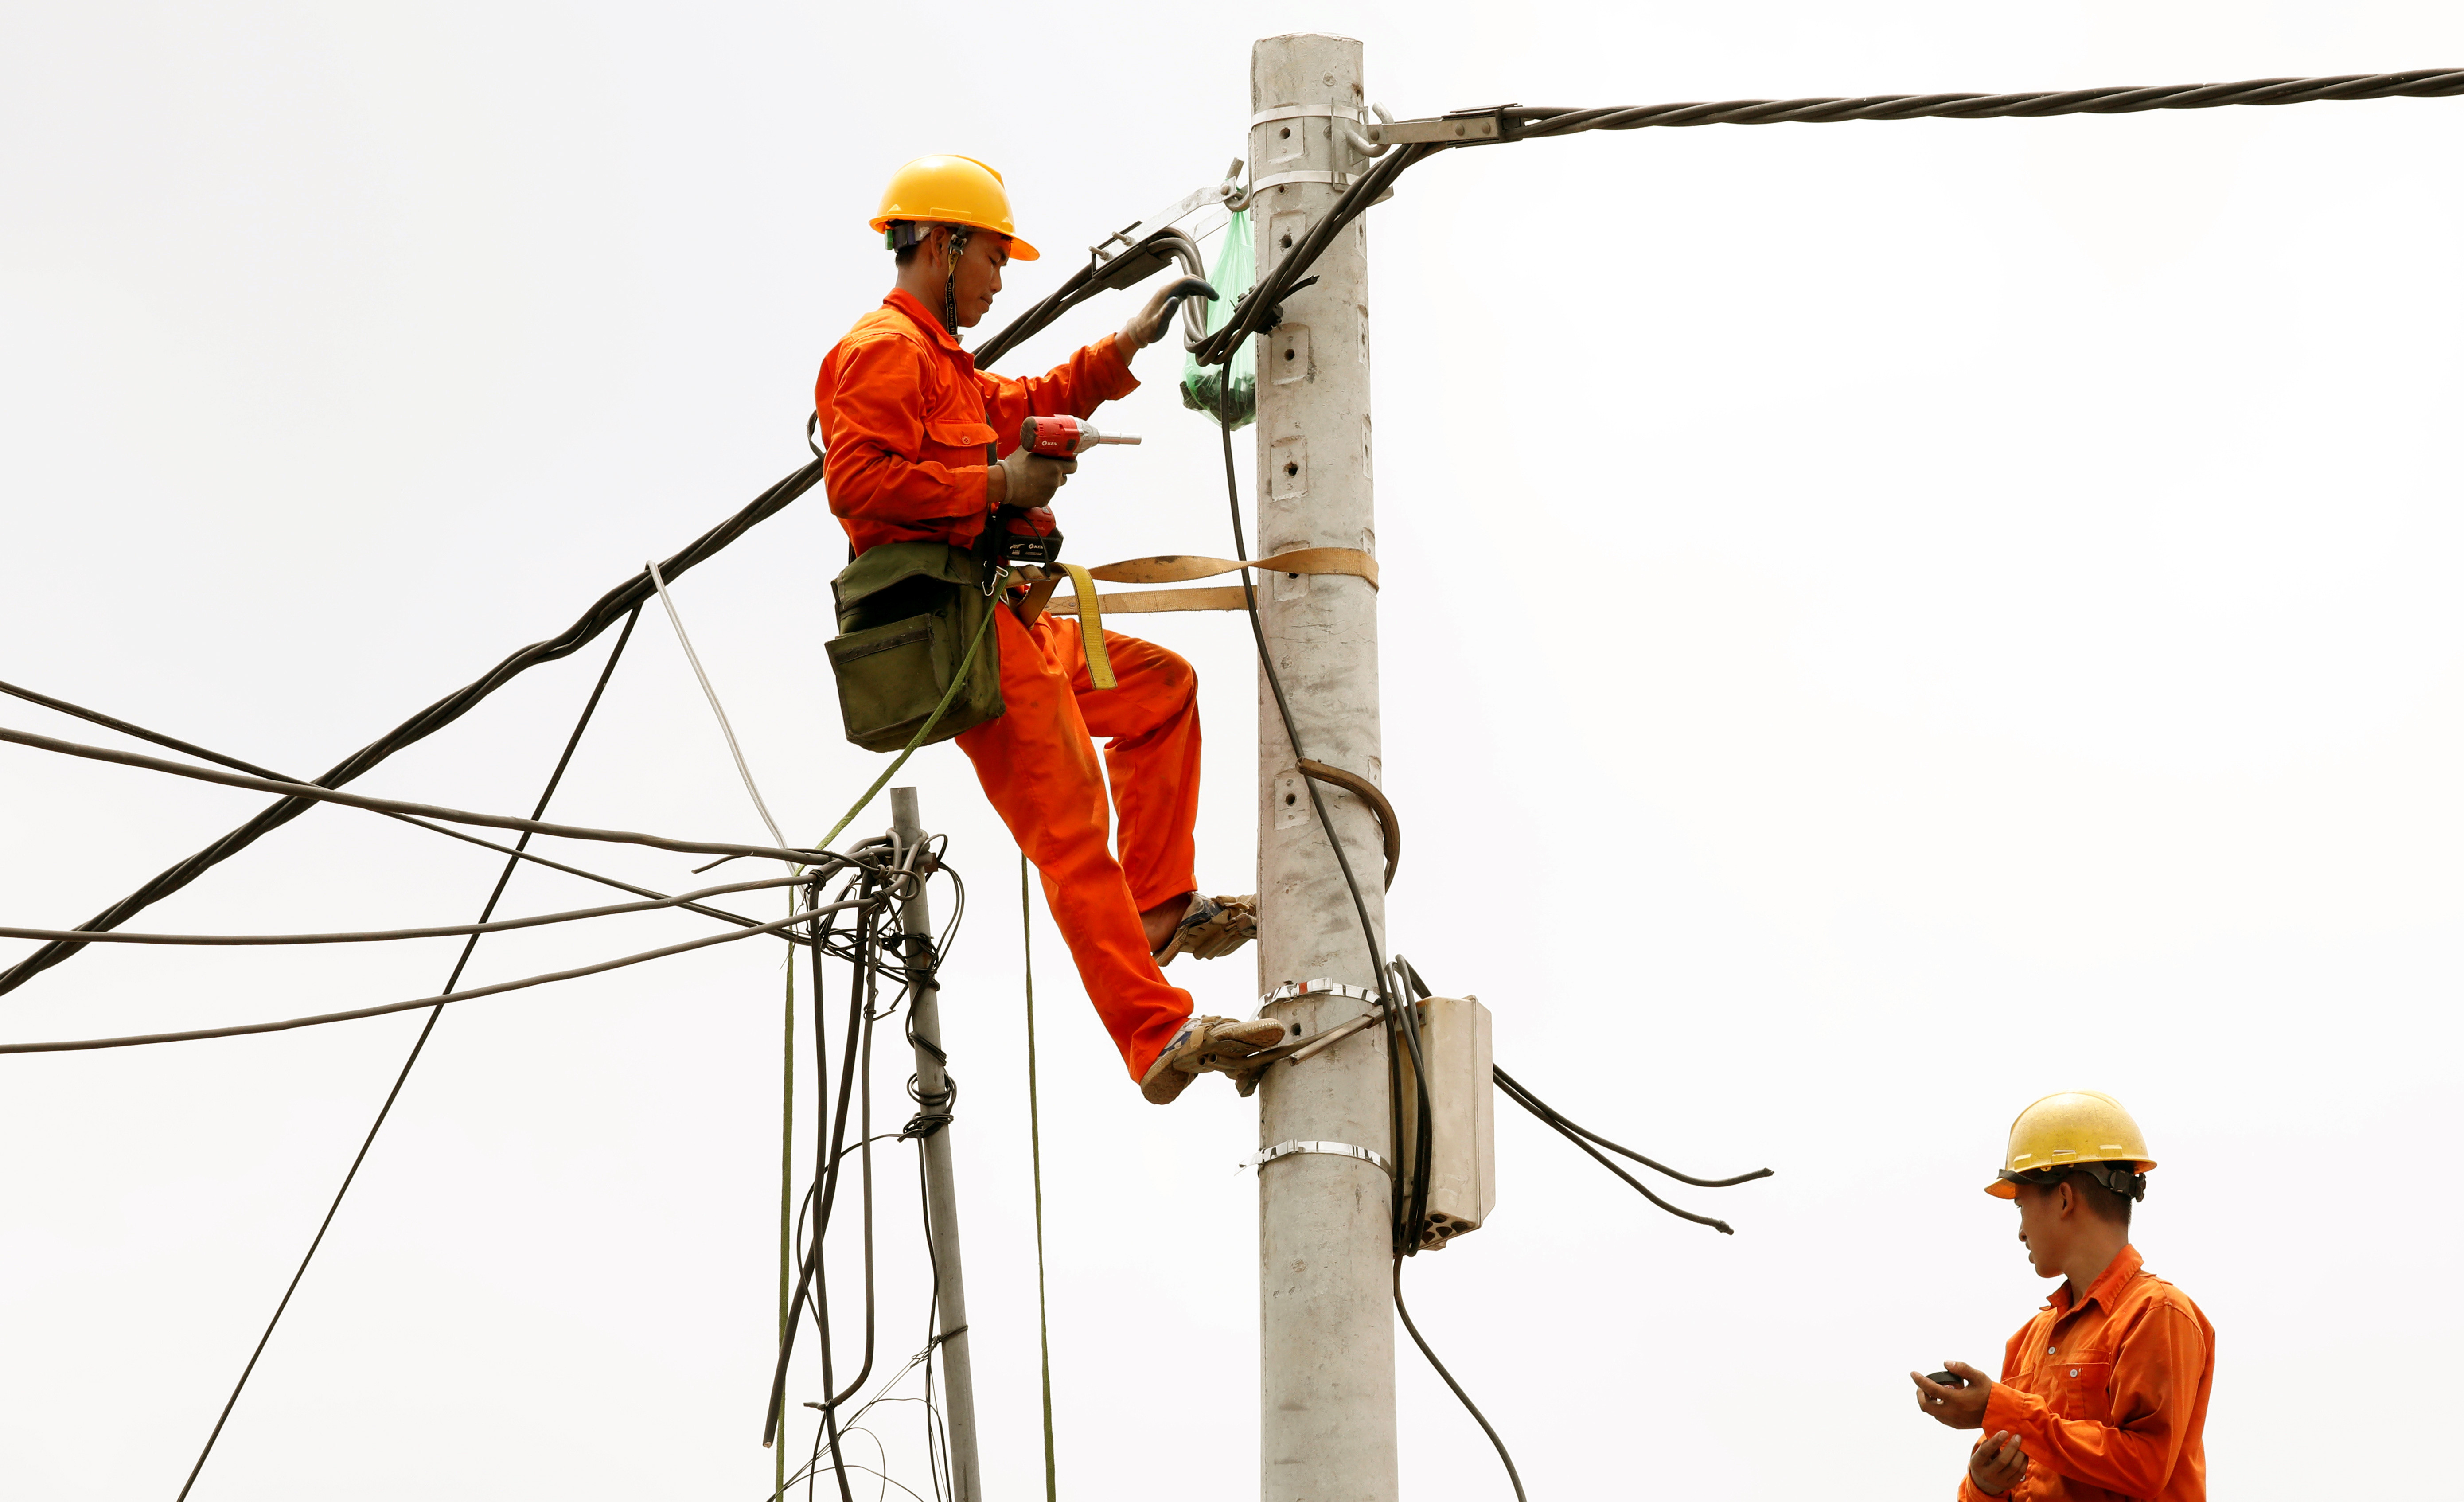 image of a worker repairing an electric grid